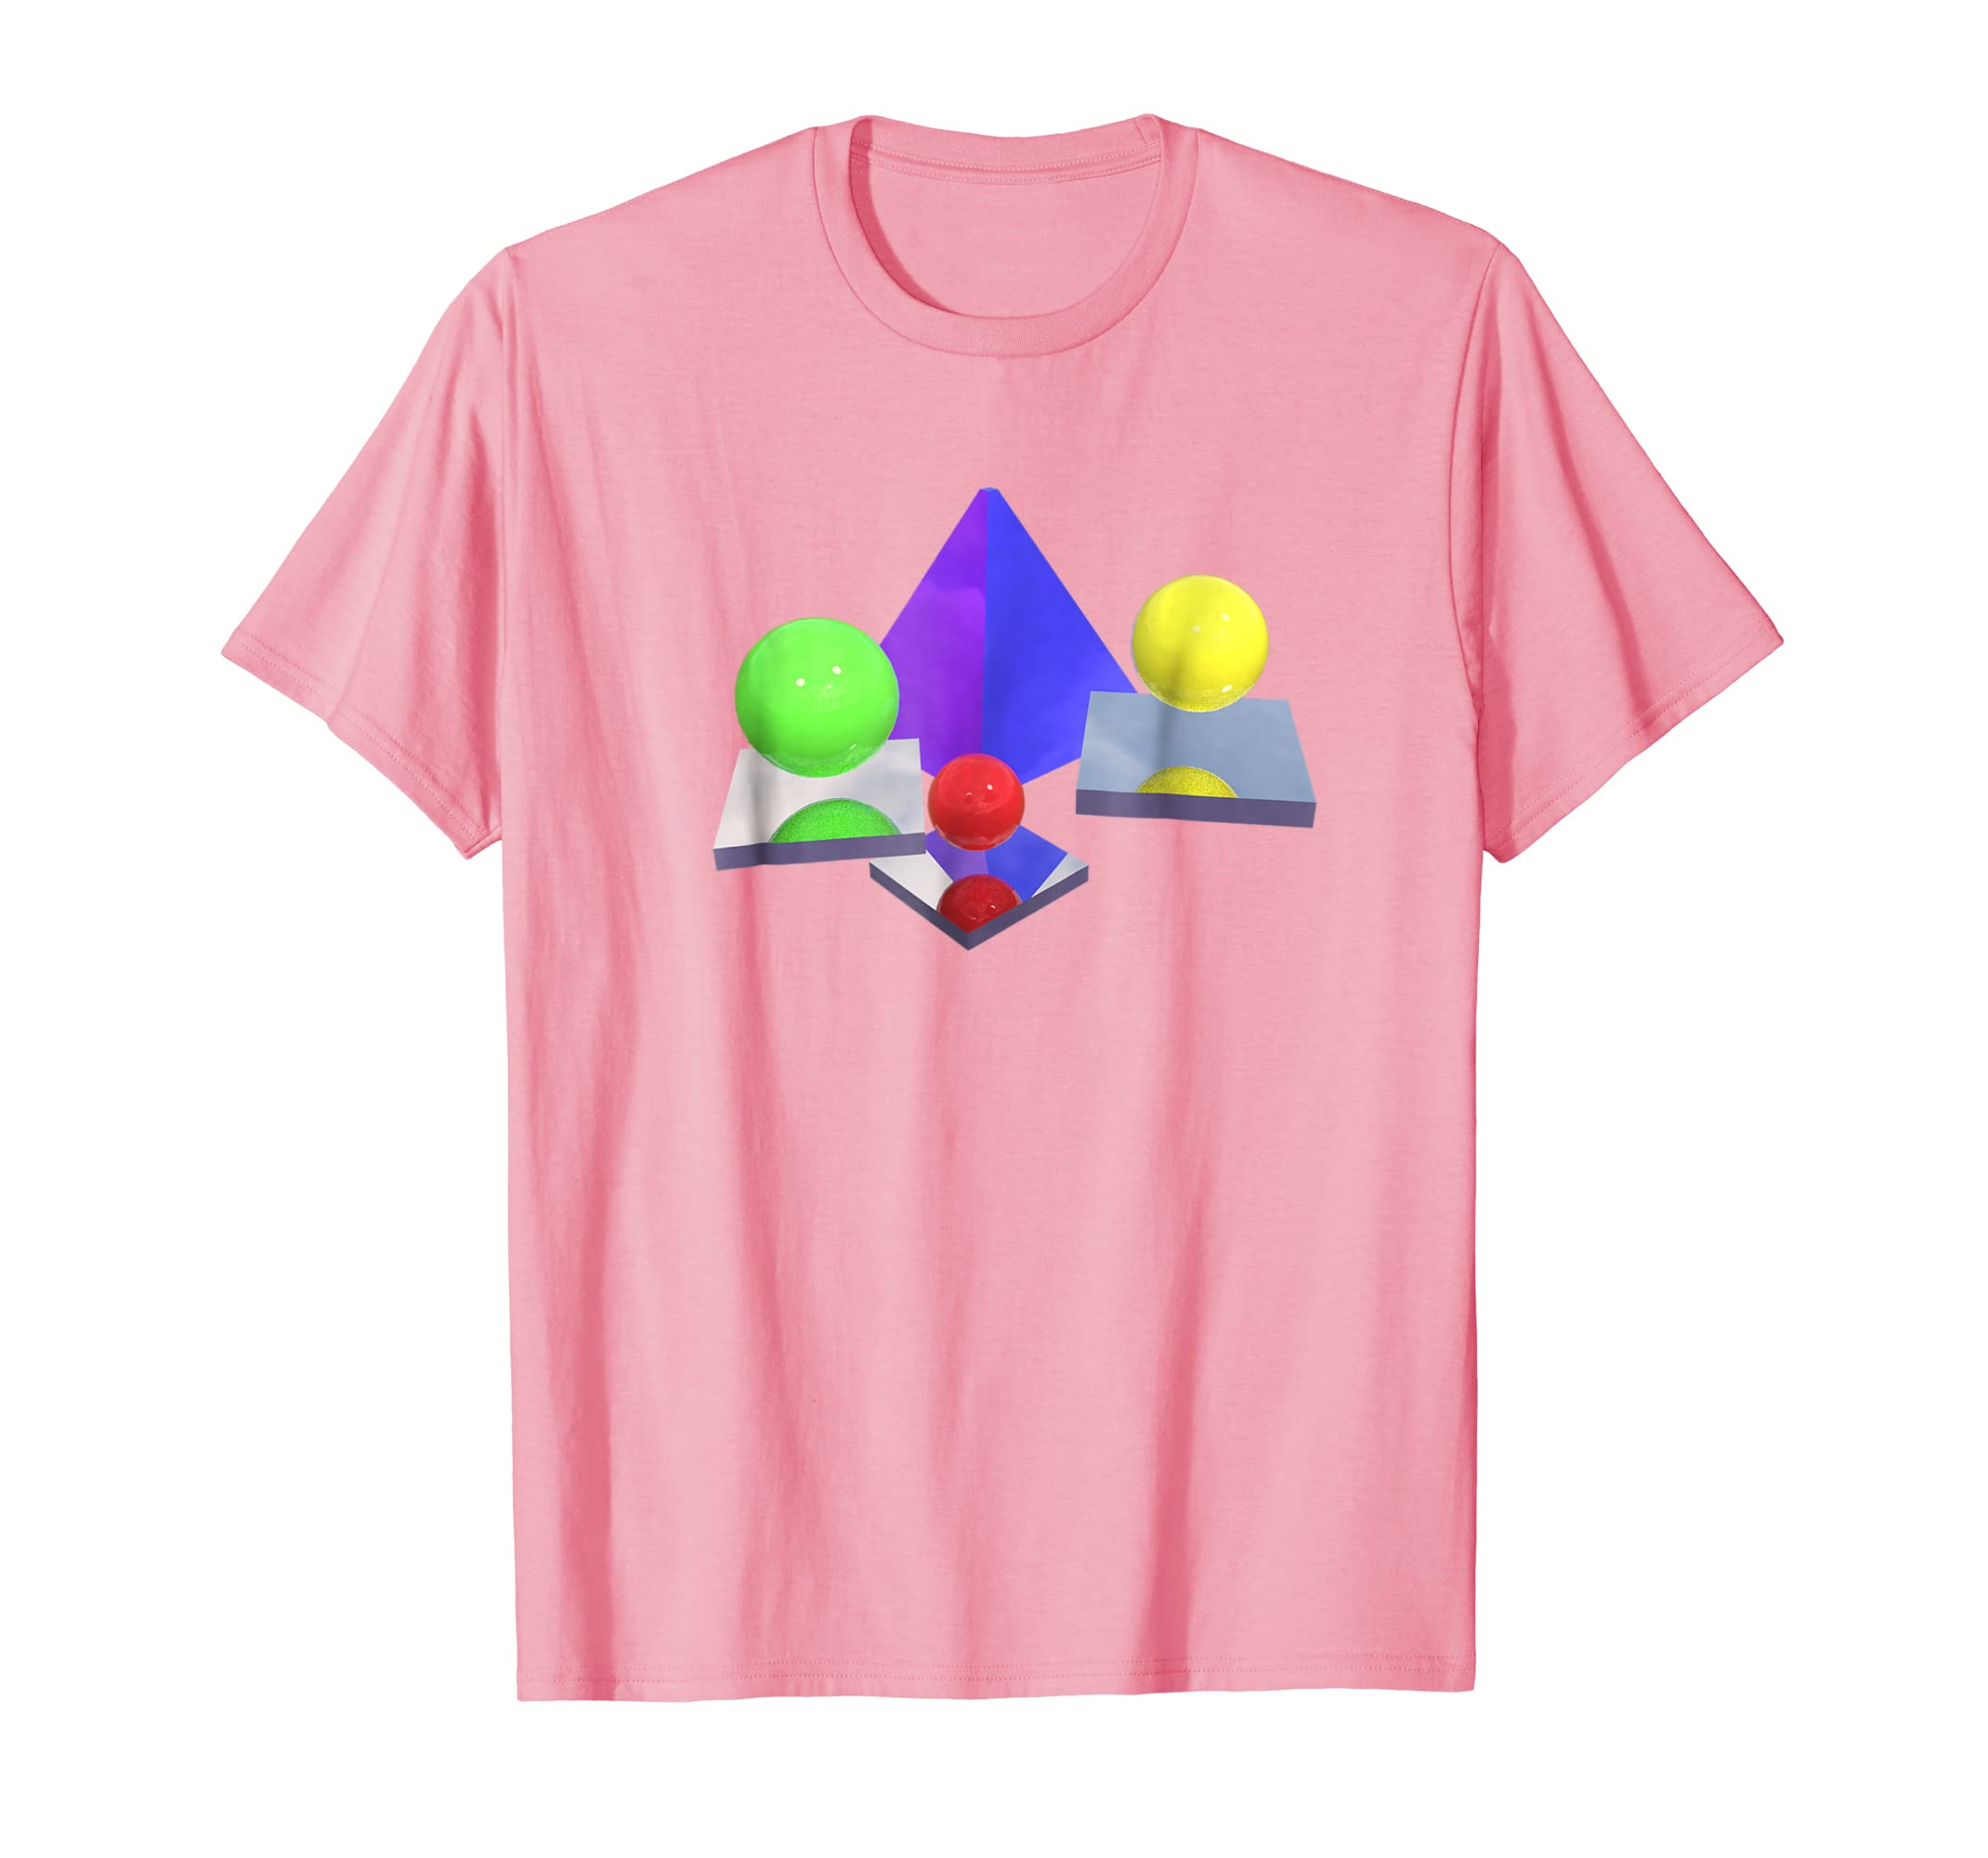 Swiftmy 1990s 3d Shapes Geometric Vaporwave Shirt Swiftmy Cool T